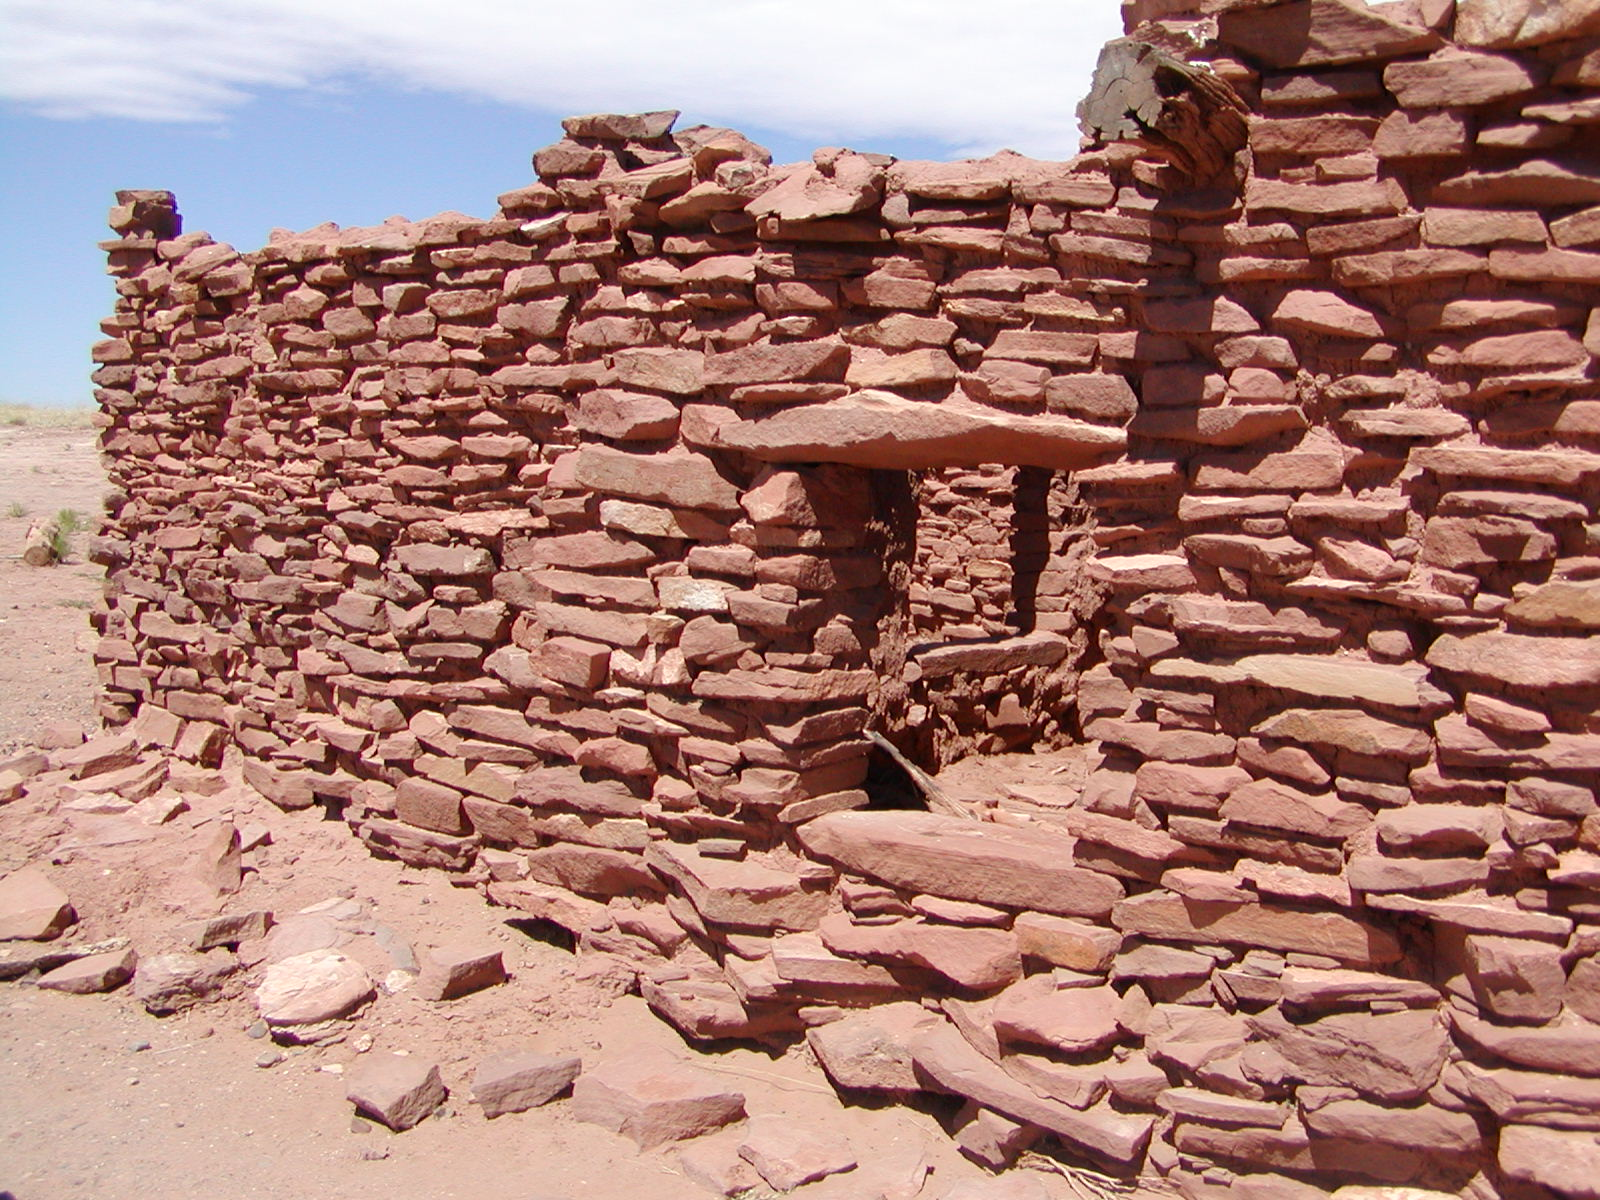 What Did The Anasazi Eat And Drink